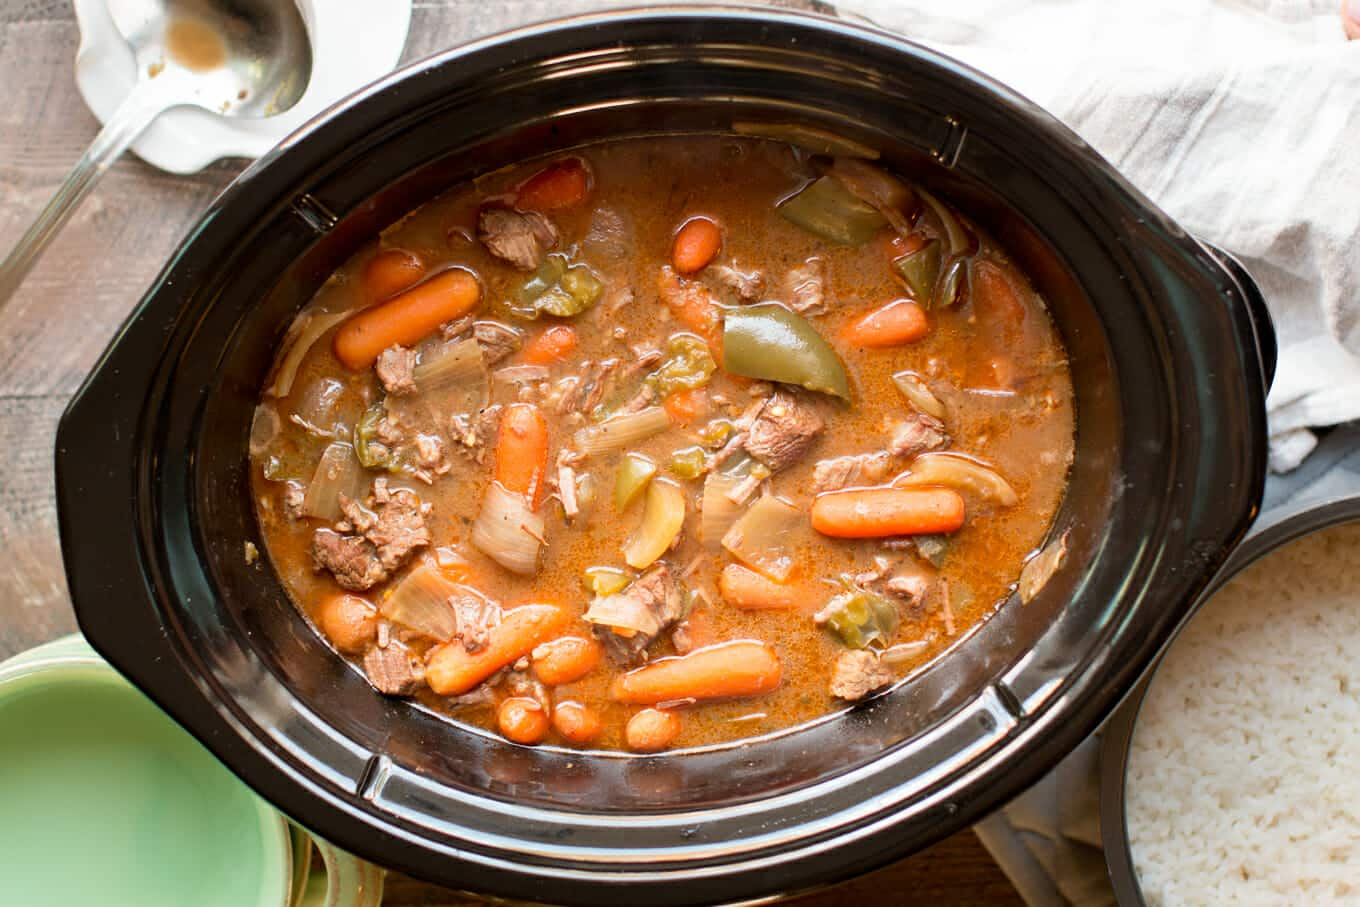 cooked a1 beef stew in a slow cooker